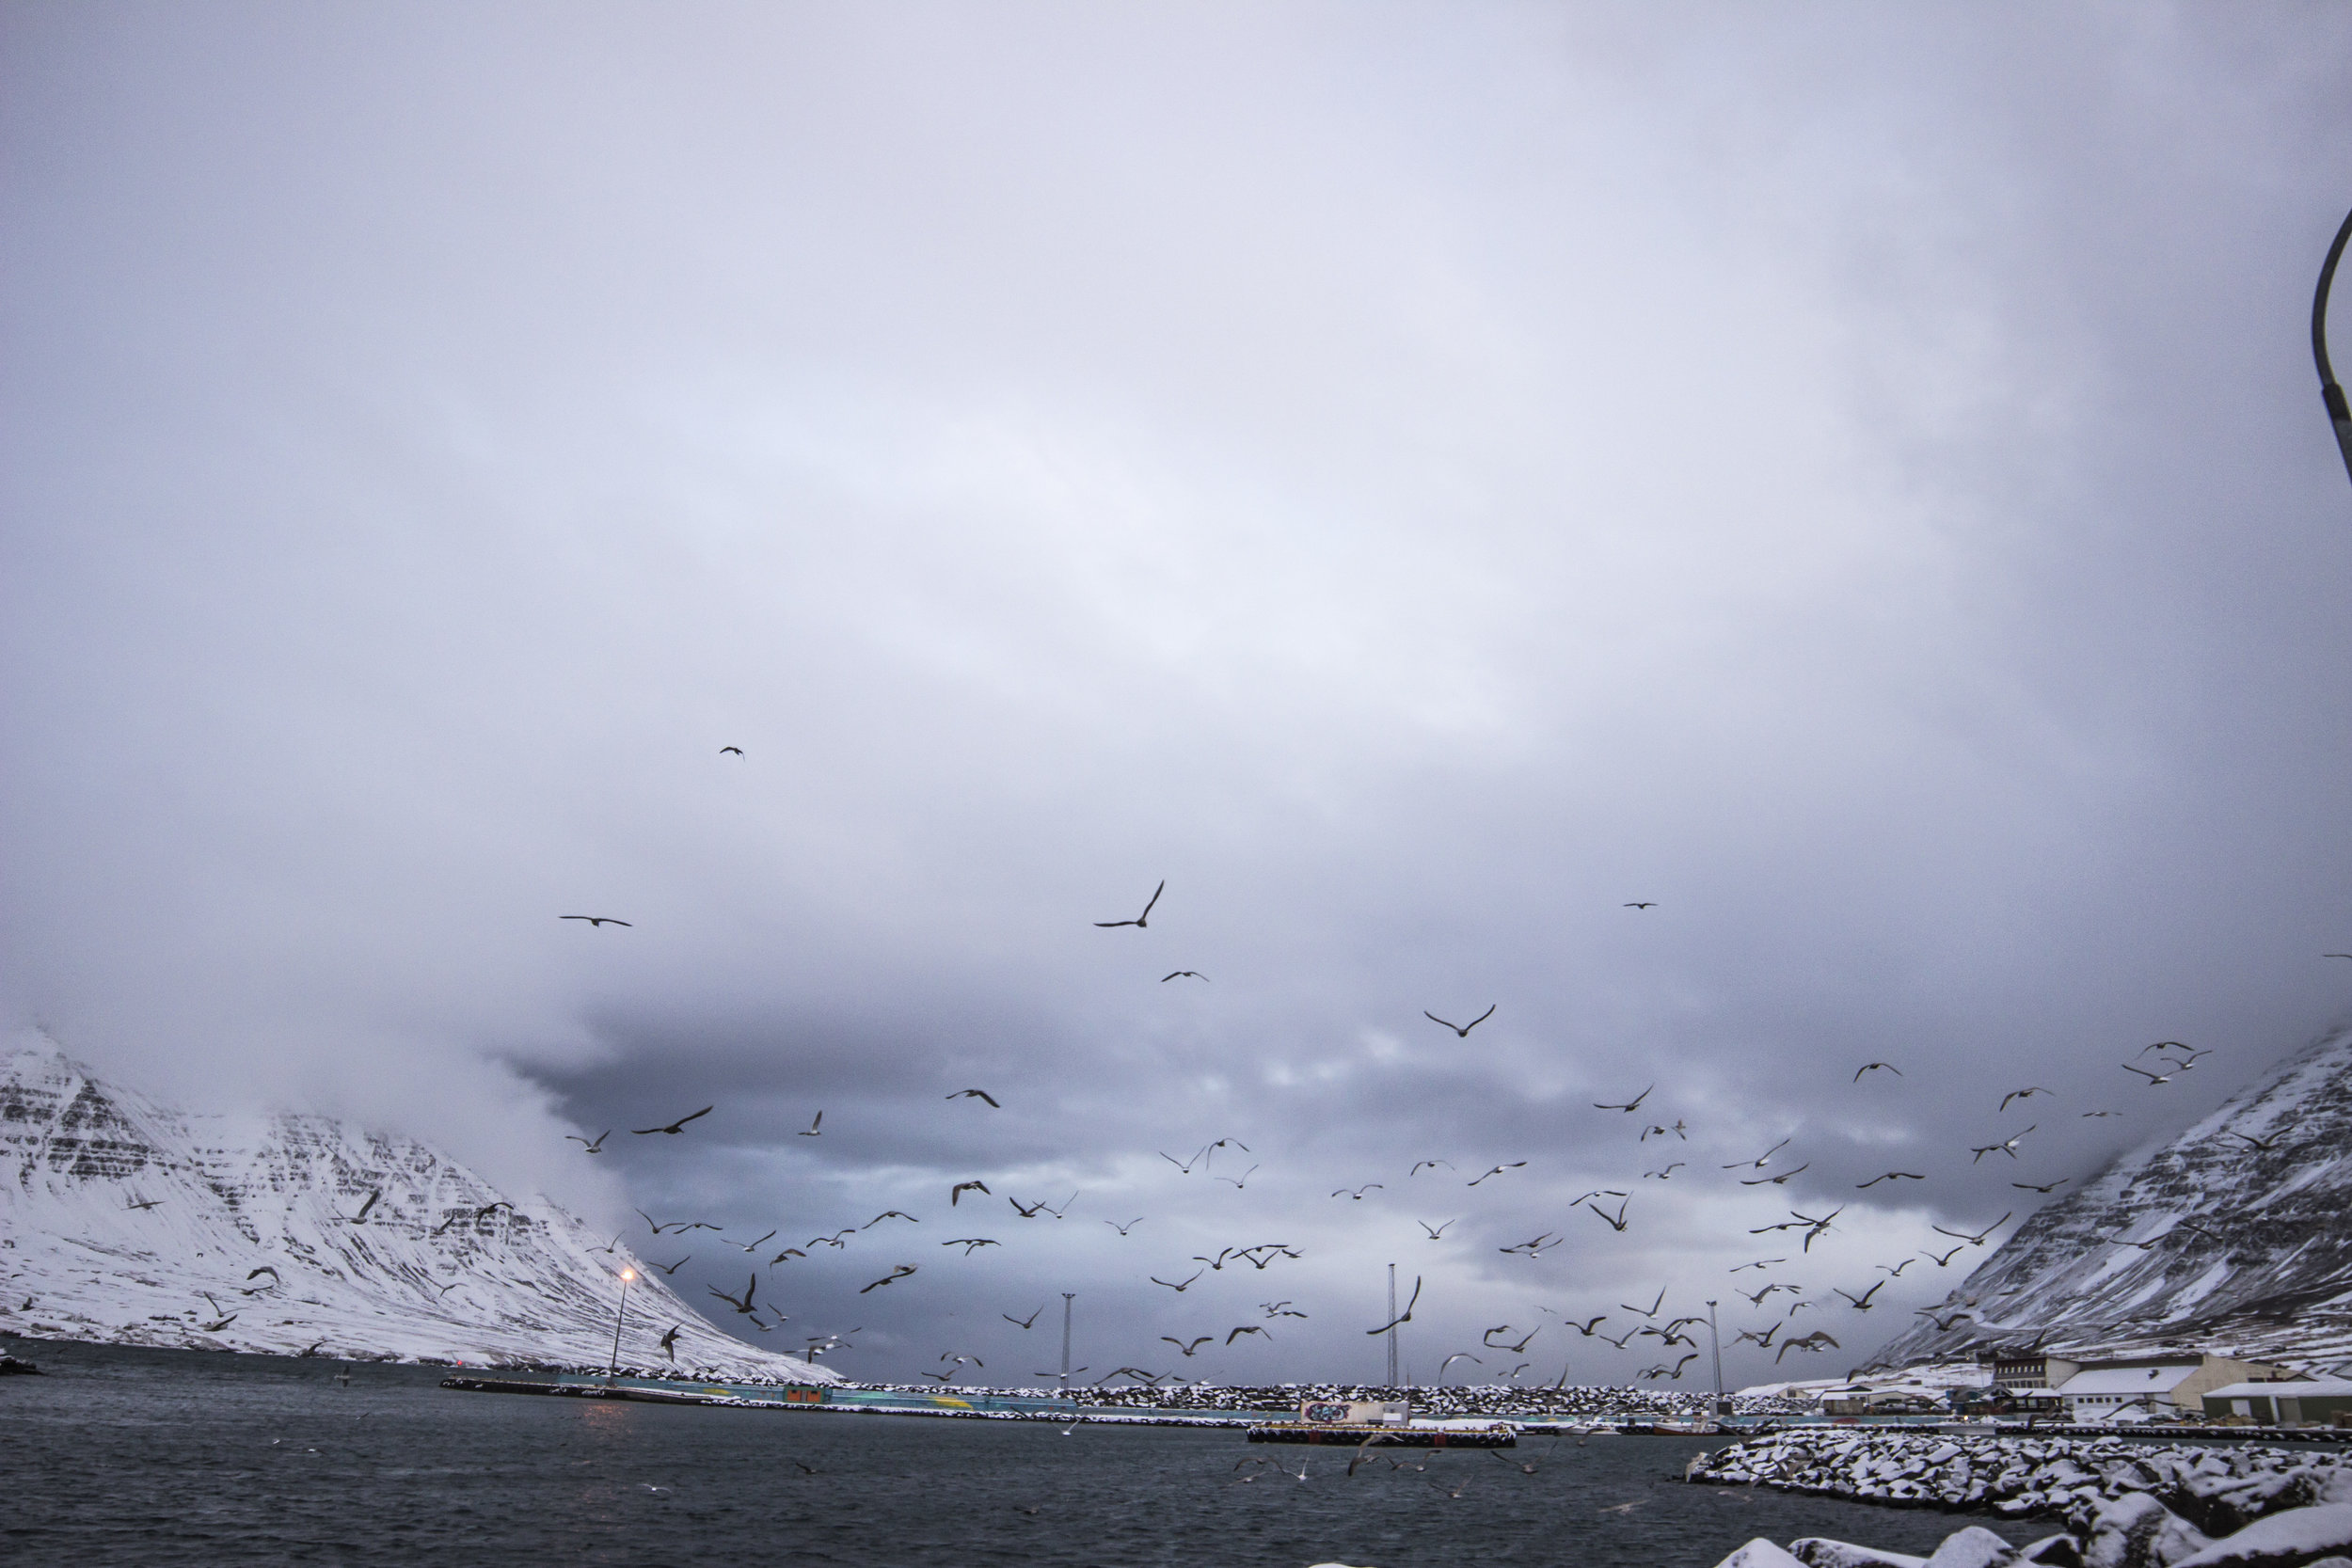 A smell of fish from factories and fishermen permeates the cold air